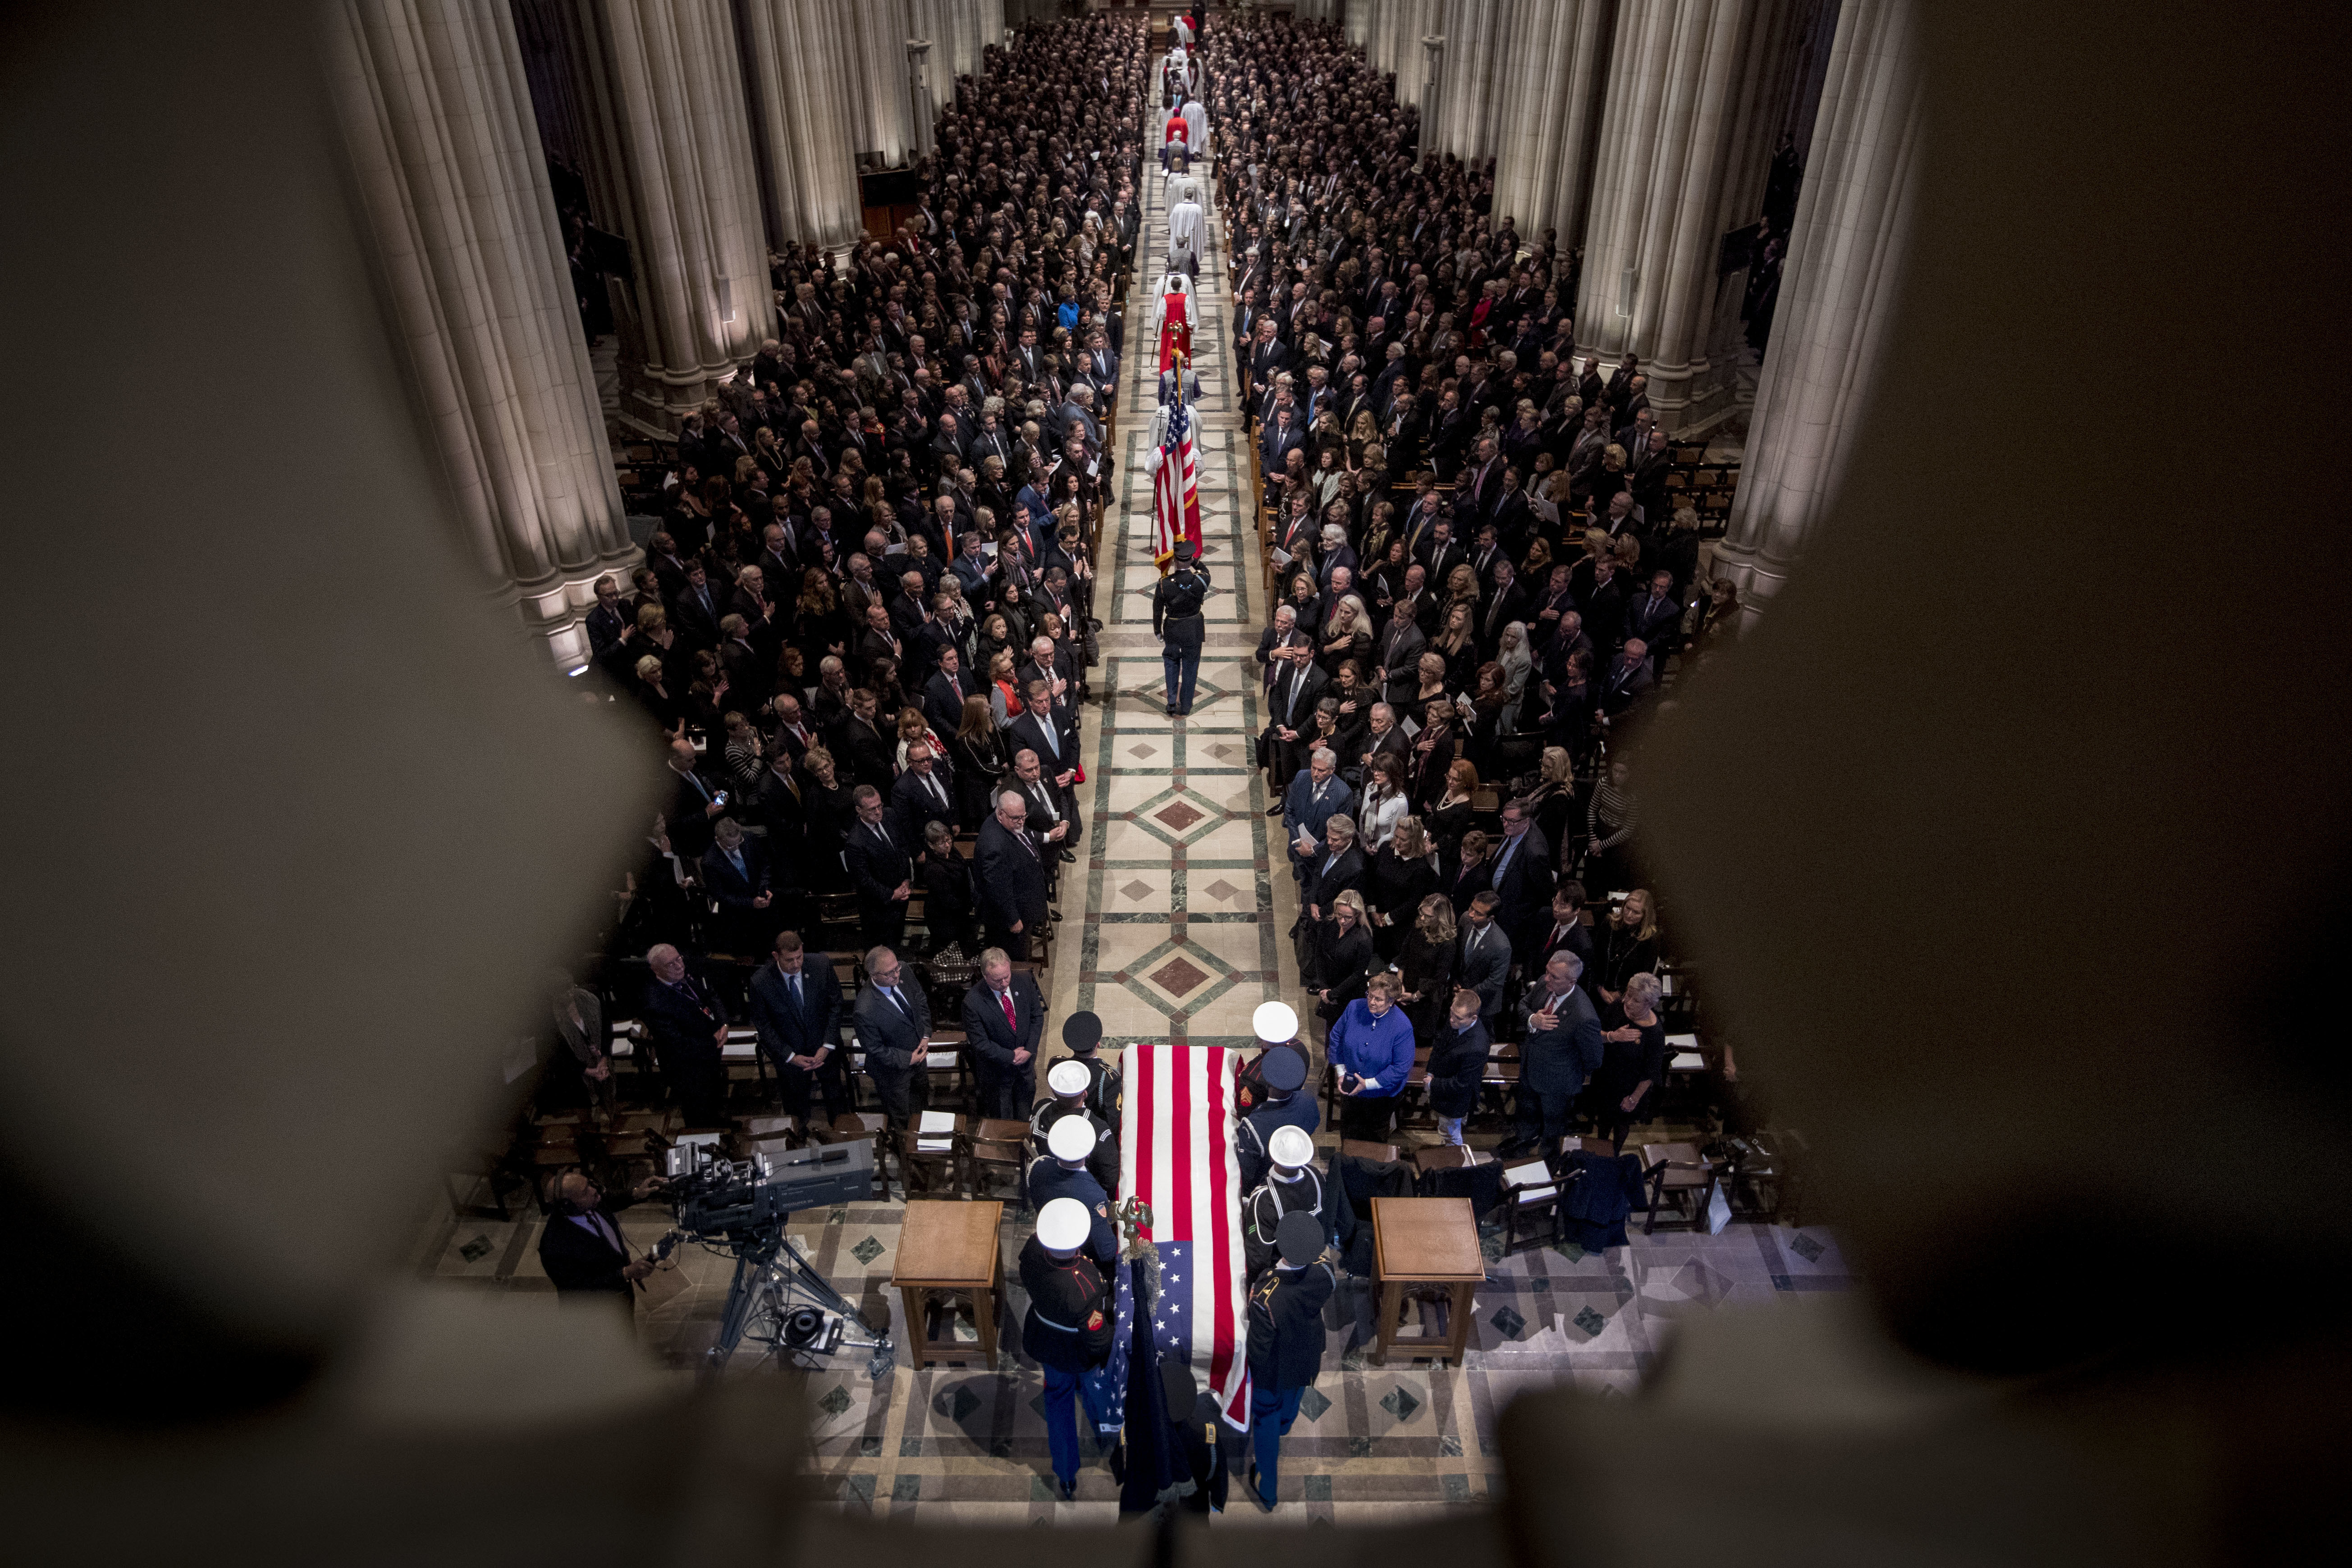 The flag-draped casket of former President George H.W. Bush is carried by a military honor guard during a State Funeral at the National Cathedral, Wednesday, Dec. 5, 2018, in Washington. (AP Photo/Andrew Harnik, Pool)